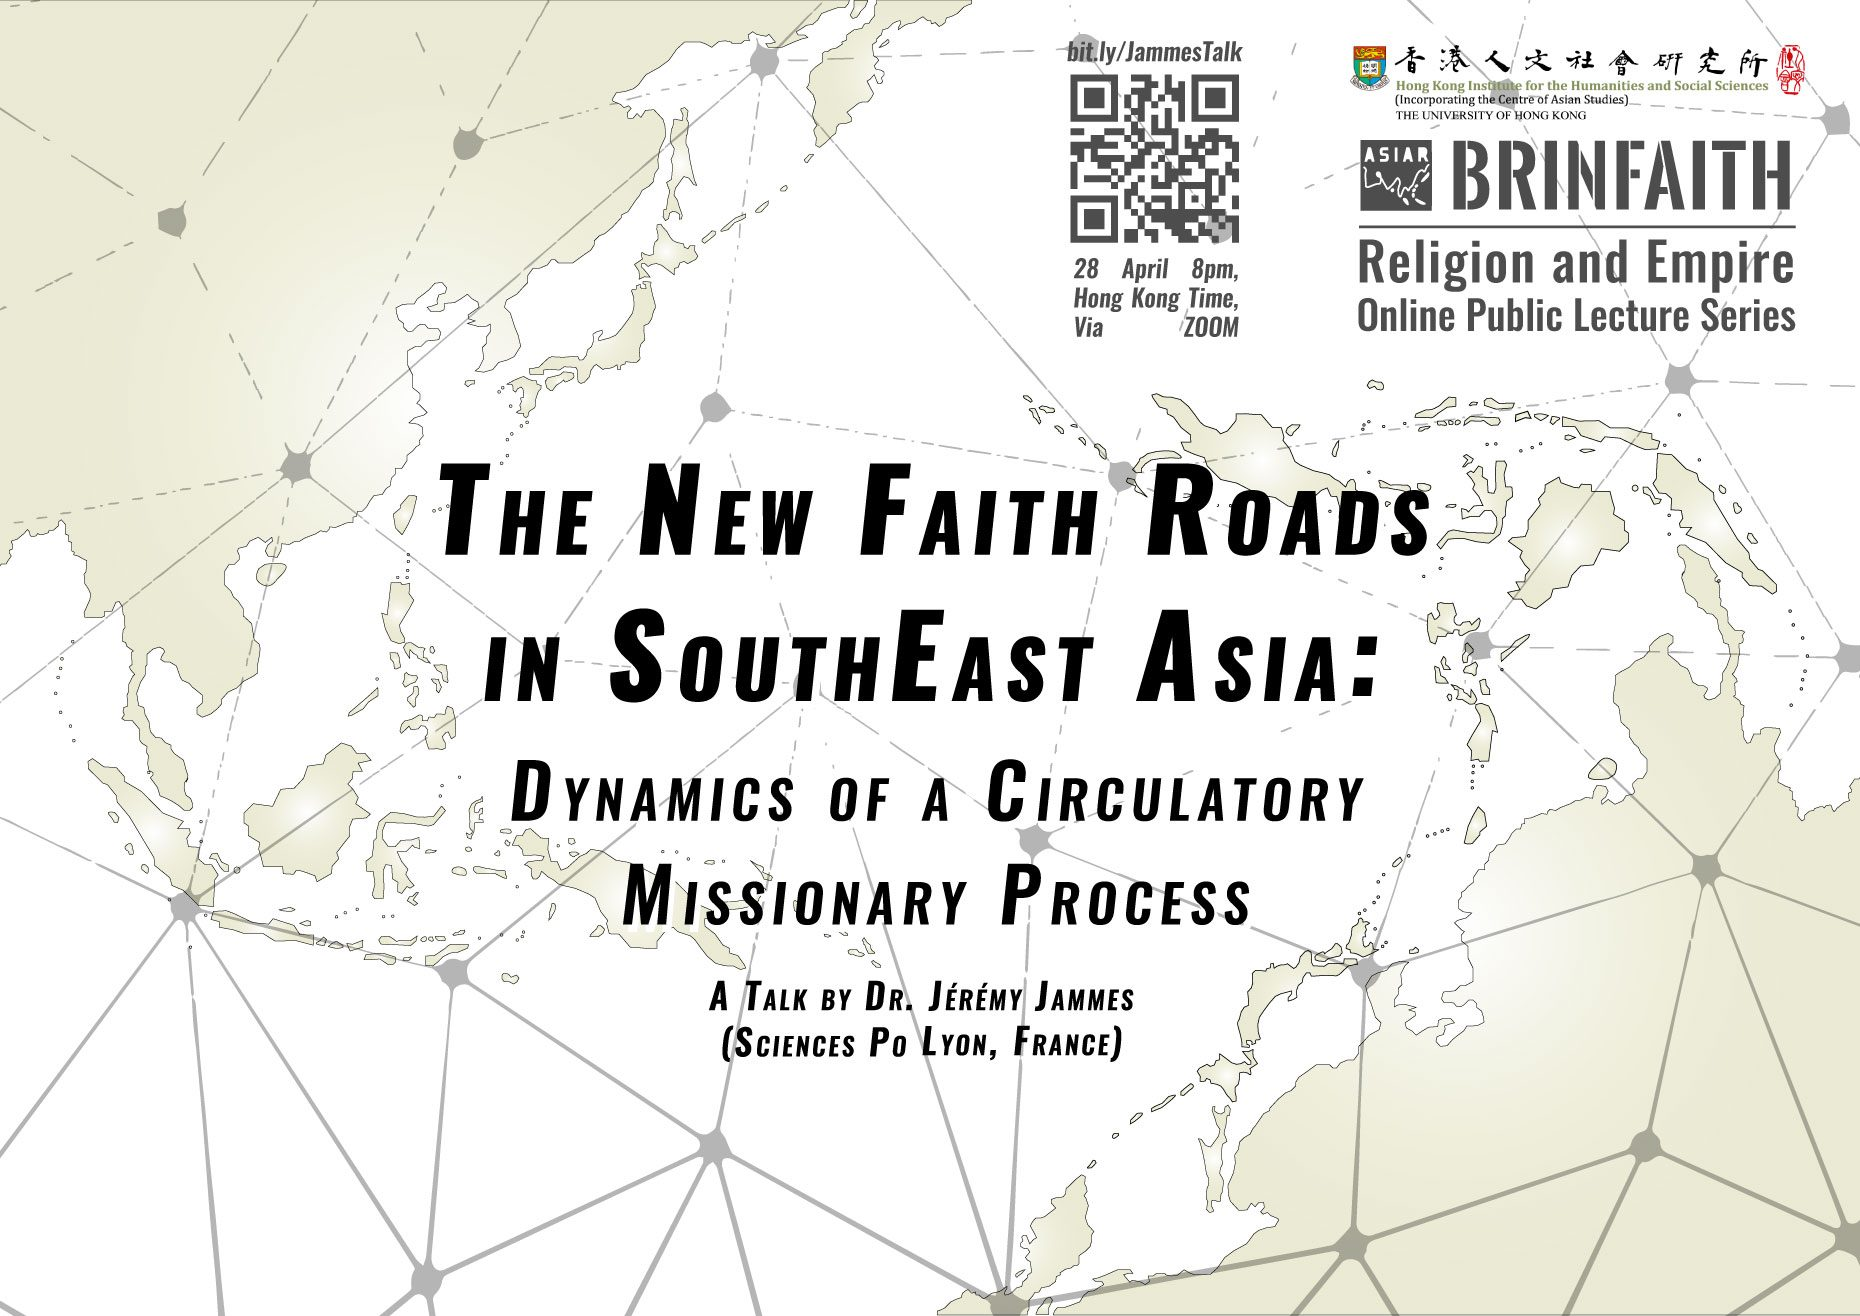 """BRINFAITH Religion and Empire Lecture Series on """"The New Faith Roads in Southeast Asia: Dynamics of a Circulatory Missionary Process"""" by Professor Jérémy Jammes (April 28, 2021)"""